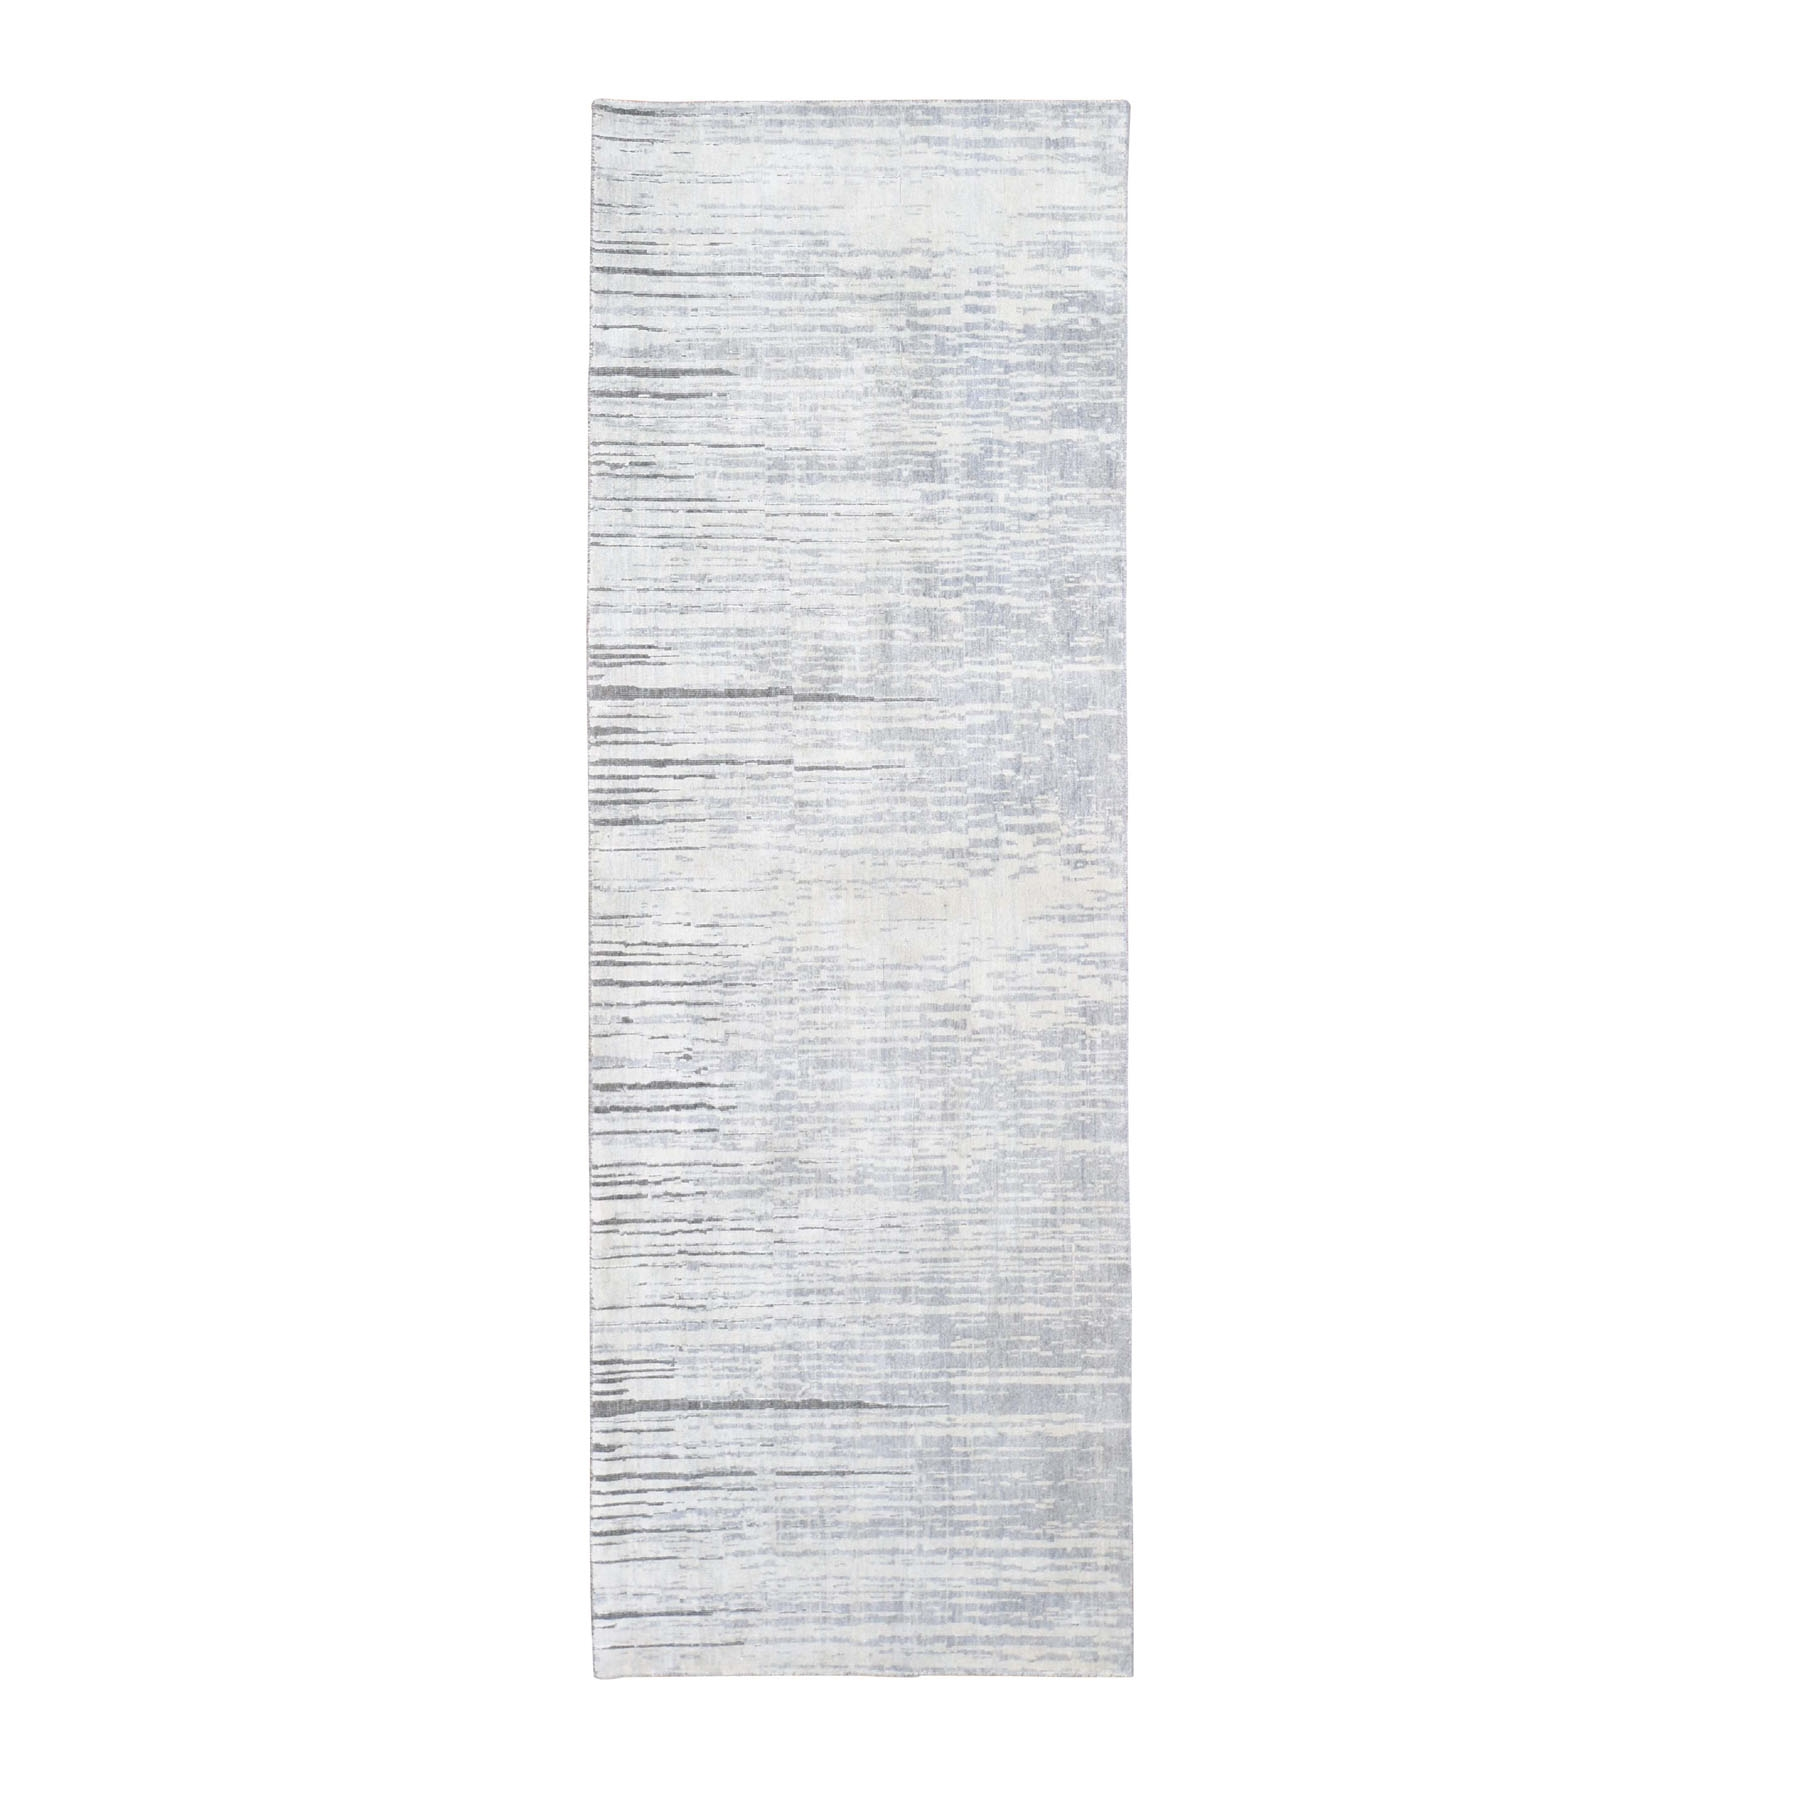 Mid Century Modern Collection Hand Knotted Grey Rug No: 0197902